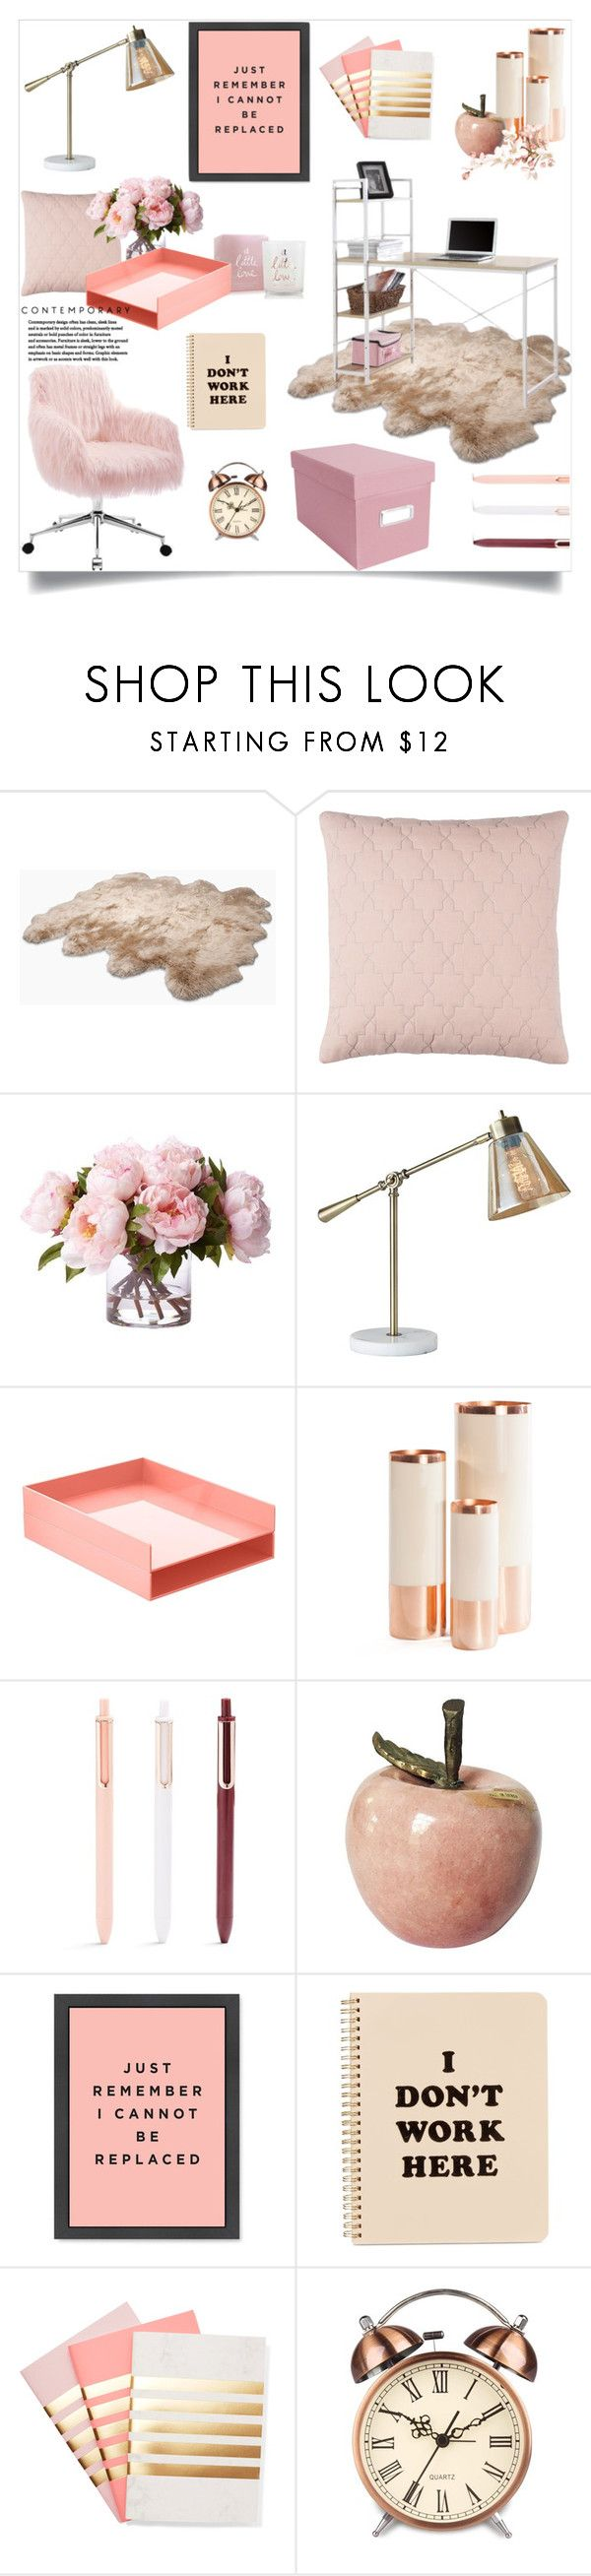 """""""Work Hard: Home Office"""" by celeste-menezes ❤ liked on Polyvore featuring interior, interiors, interior design, home, home decor, interior decorating, UGG Australia, Katie Loxton, Adesso and Hawkins"""